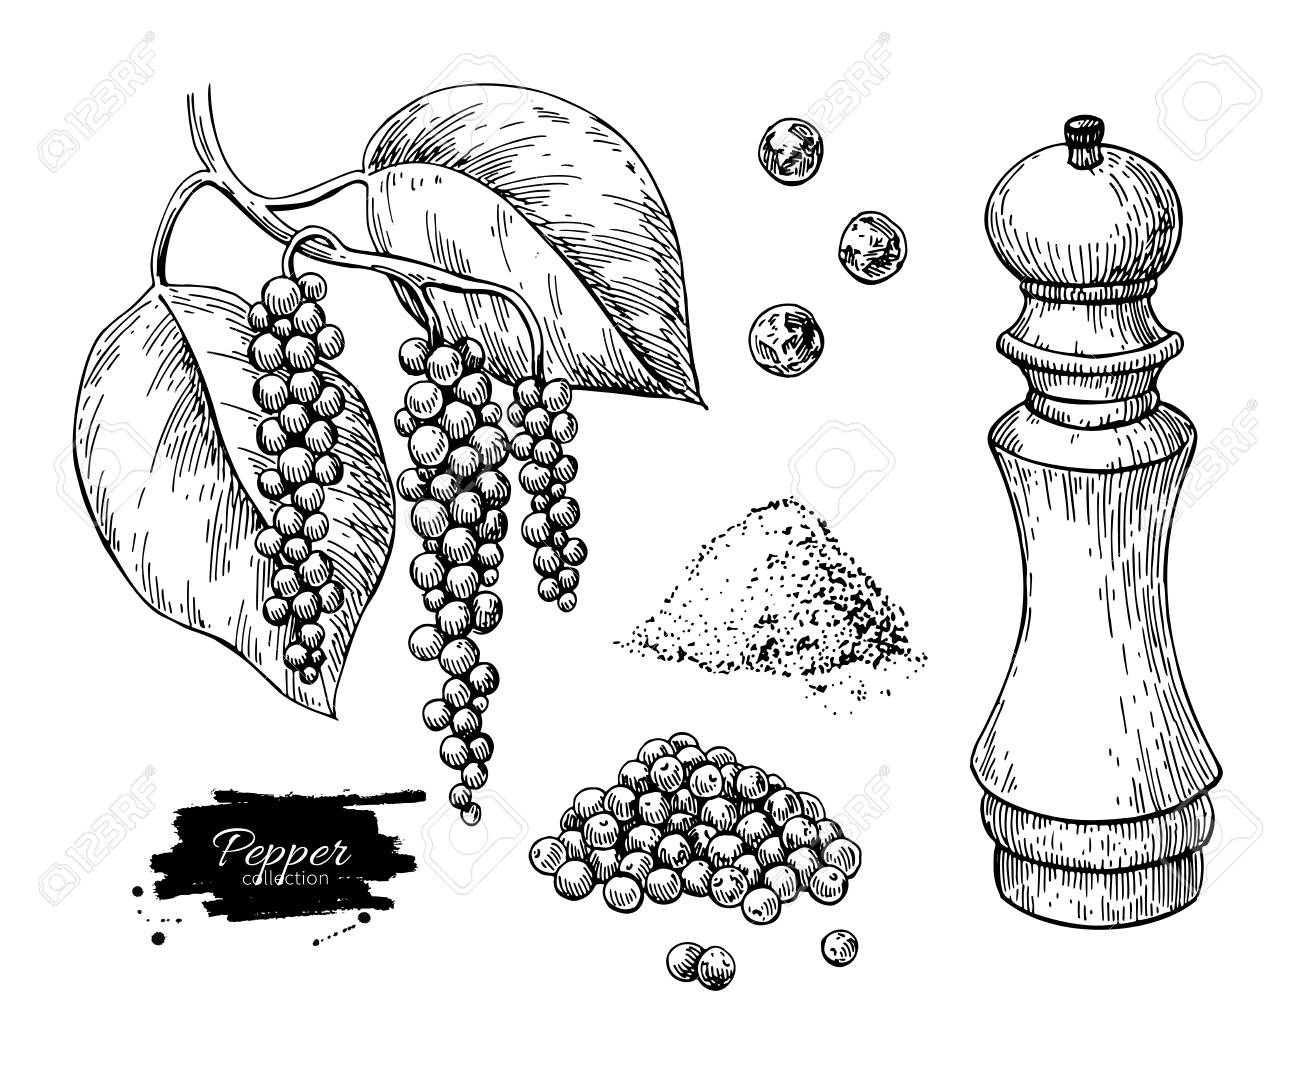 Black pepper vector drawing set. Peppercorn heap, mill, dryed seed, plant, grounded powder. - 101022651